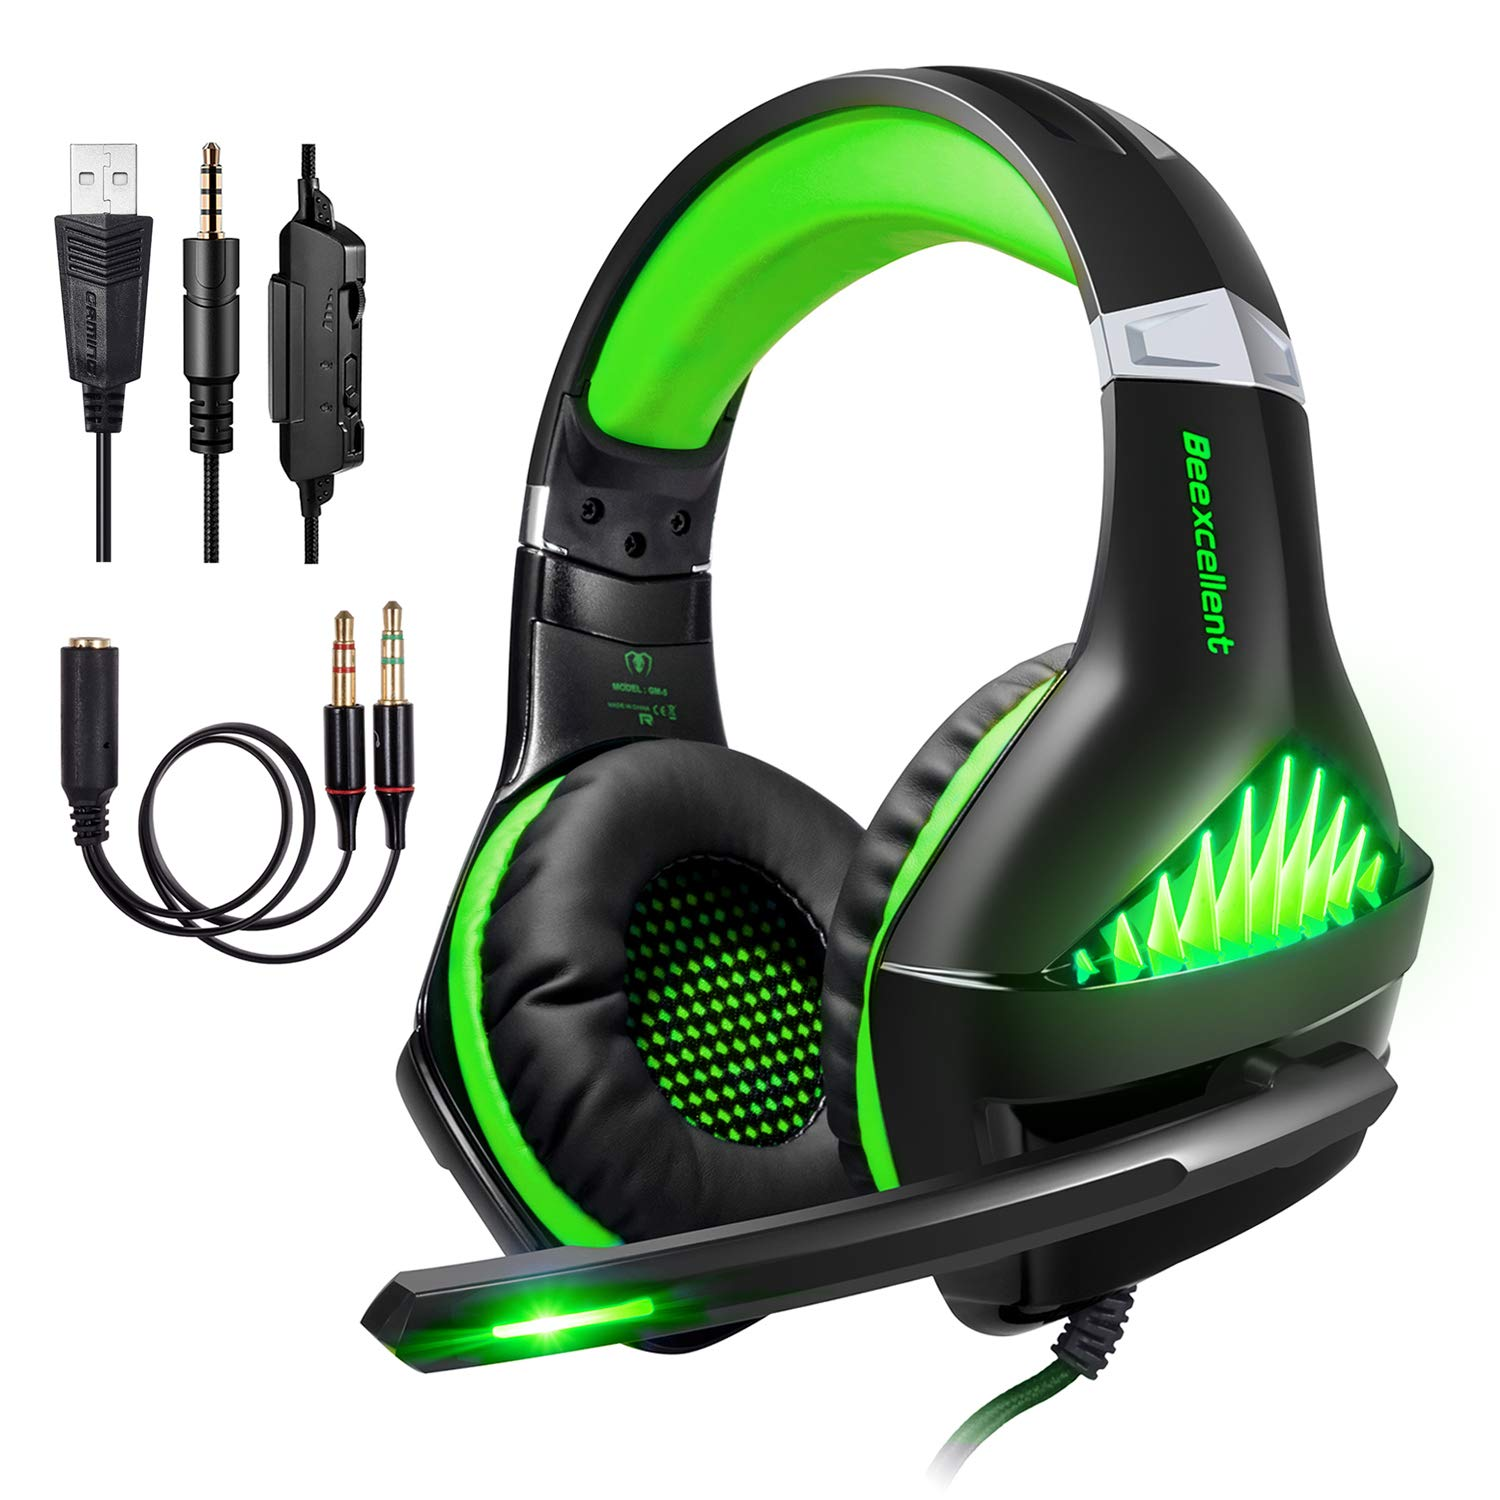 ShinePick PS4 Gaming Headset 3.5mm Wired Bass Stereo Noise Isolation Gaming Headphone with Mic and LED Lights for Xbox one, Playstation 4, Laptop, PC Green